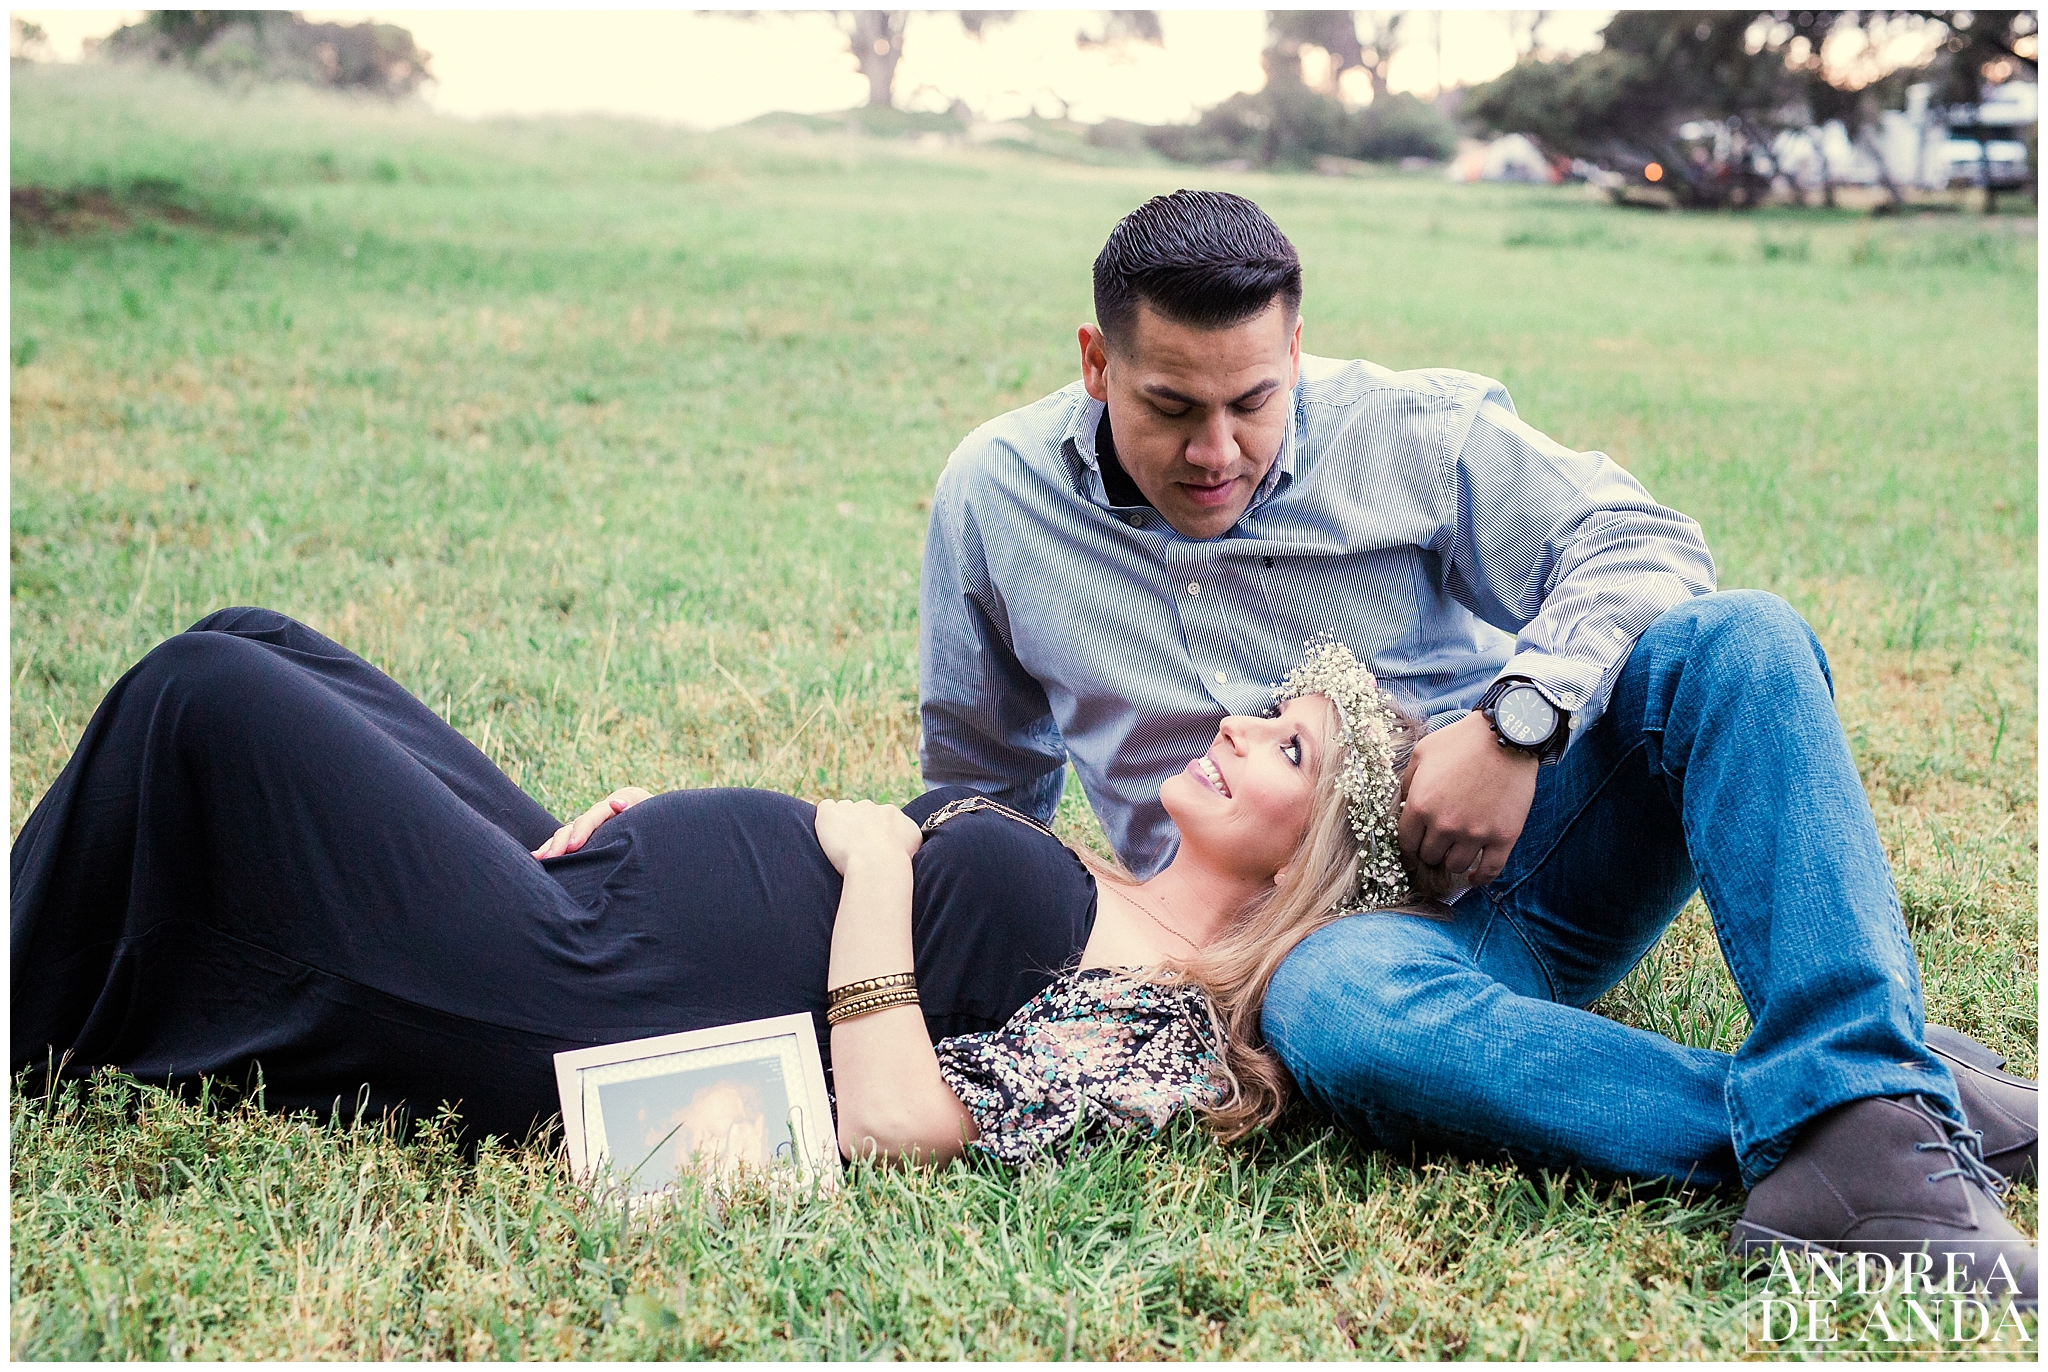 Pismo beach maternity session_ Andrea de Anda Photography__0017.jpg